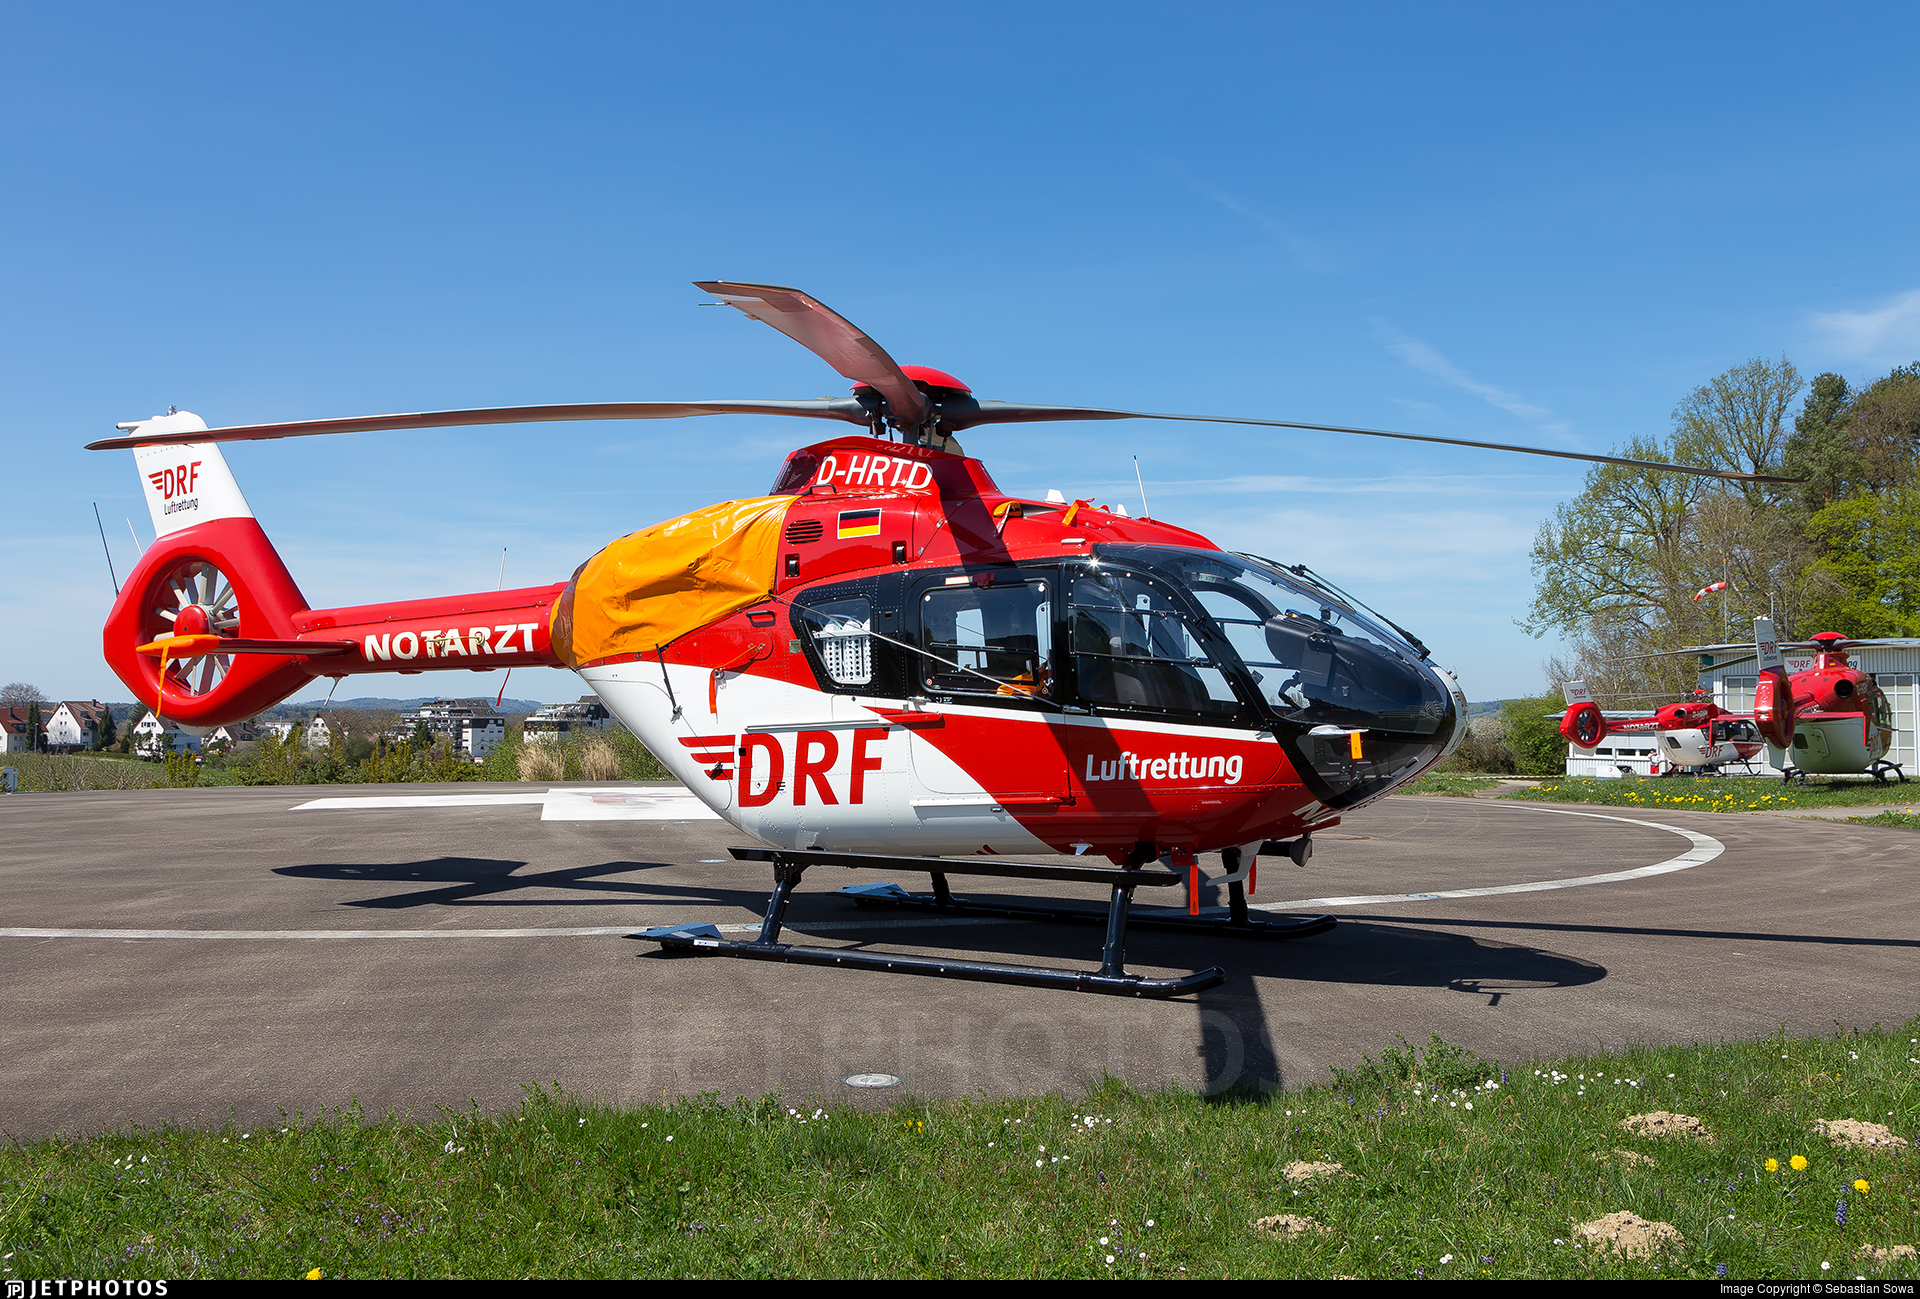 D-HRTD - Airbus Helicopters EC135 T3P3 - DRF Luftrettung